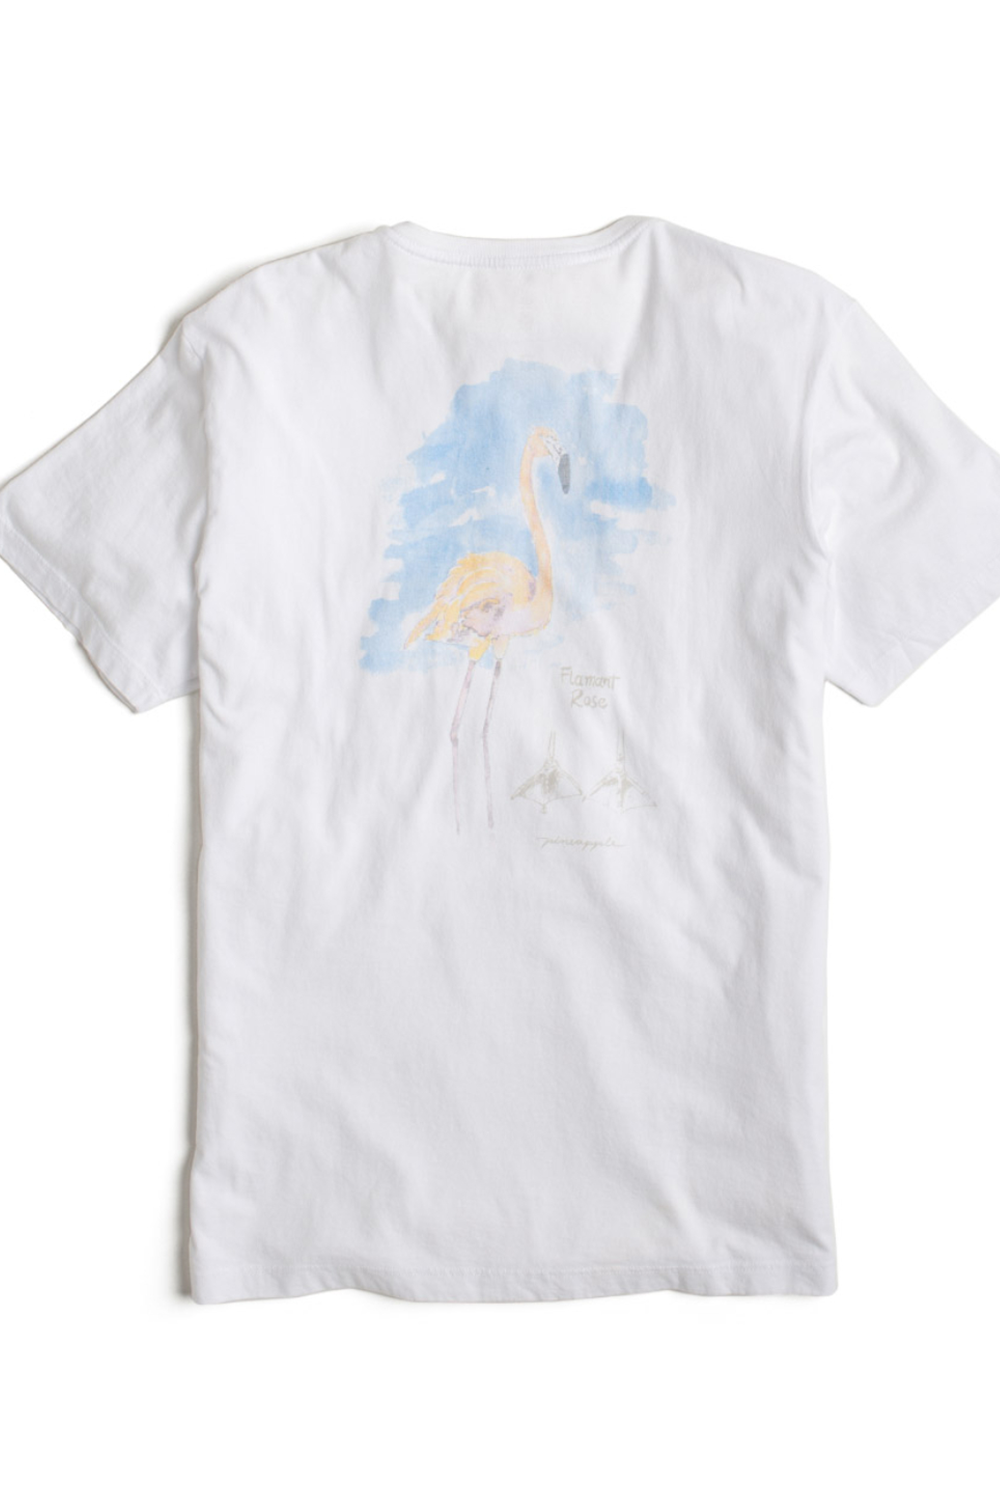 T-Shirt Com Etiqueta no Bolso e Silk Flamingo